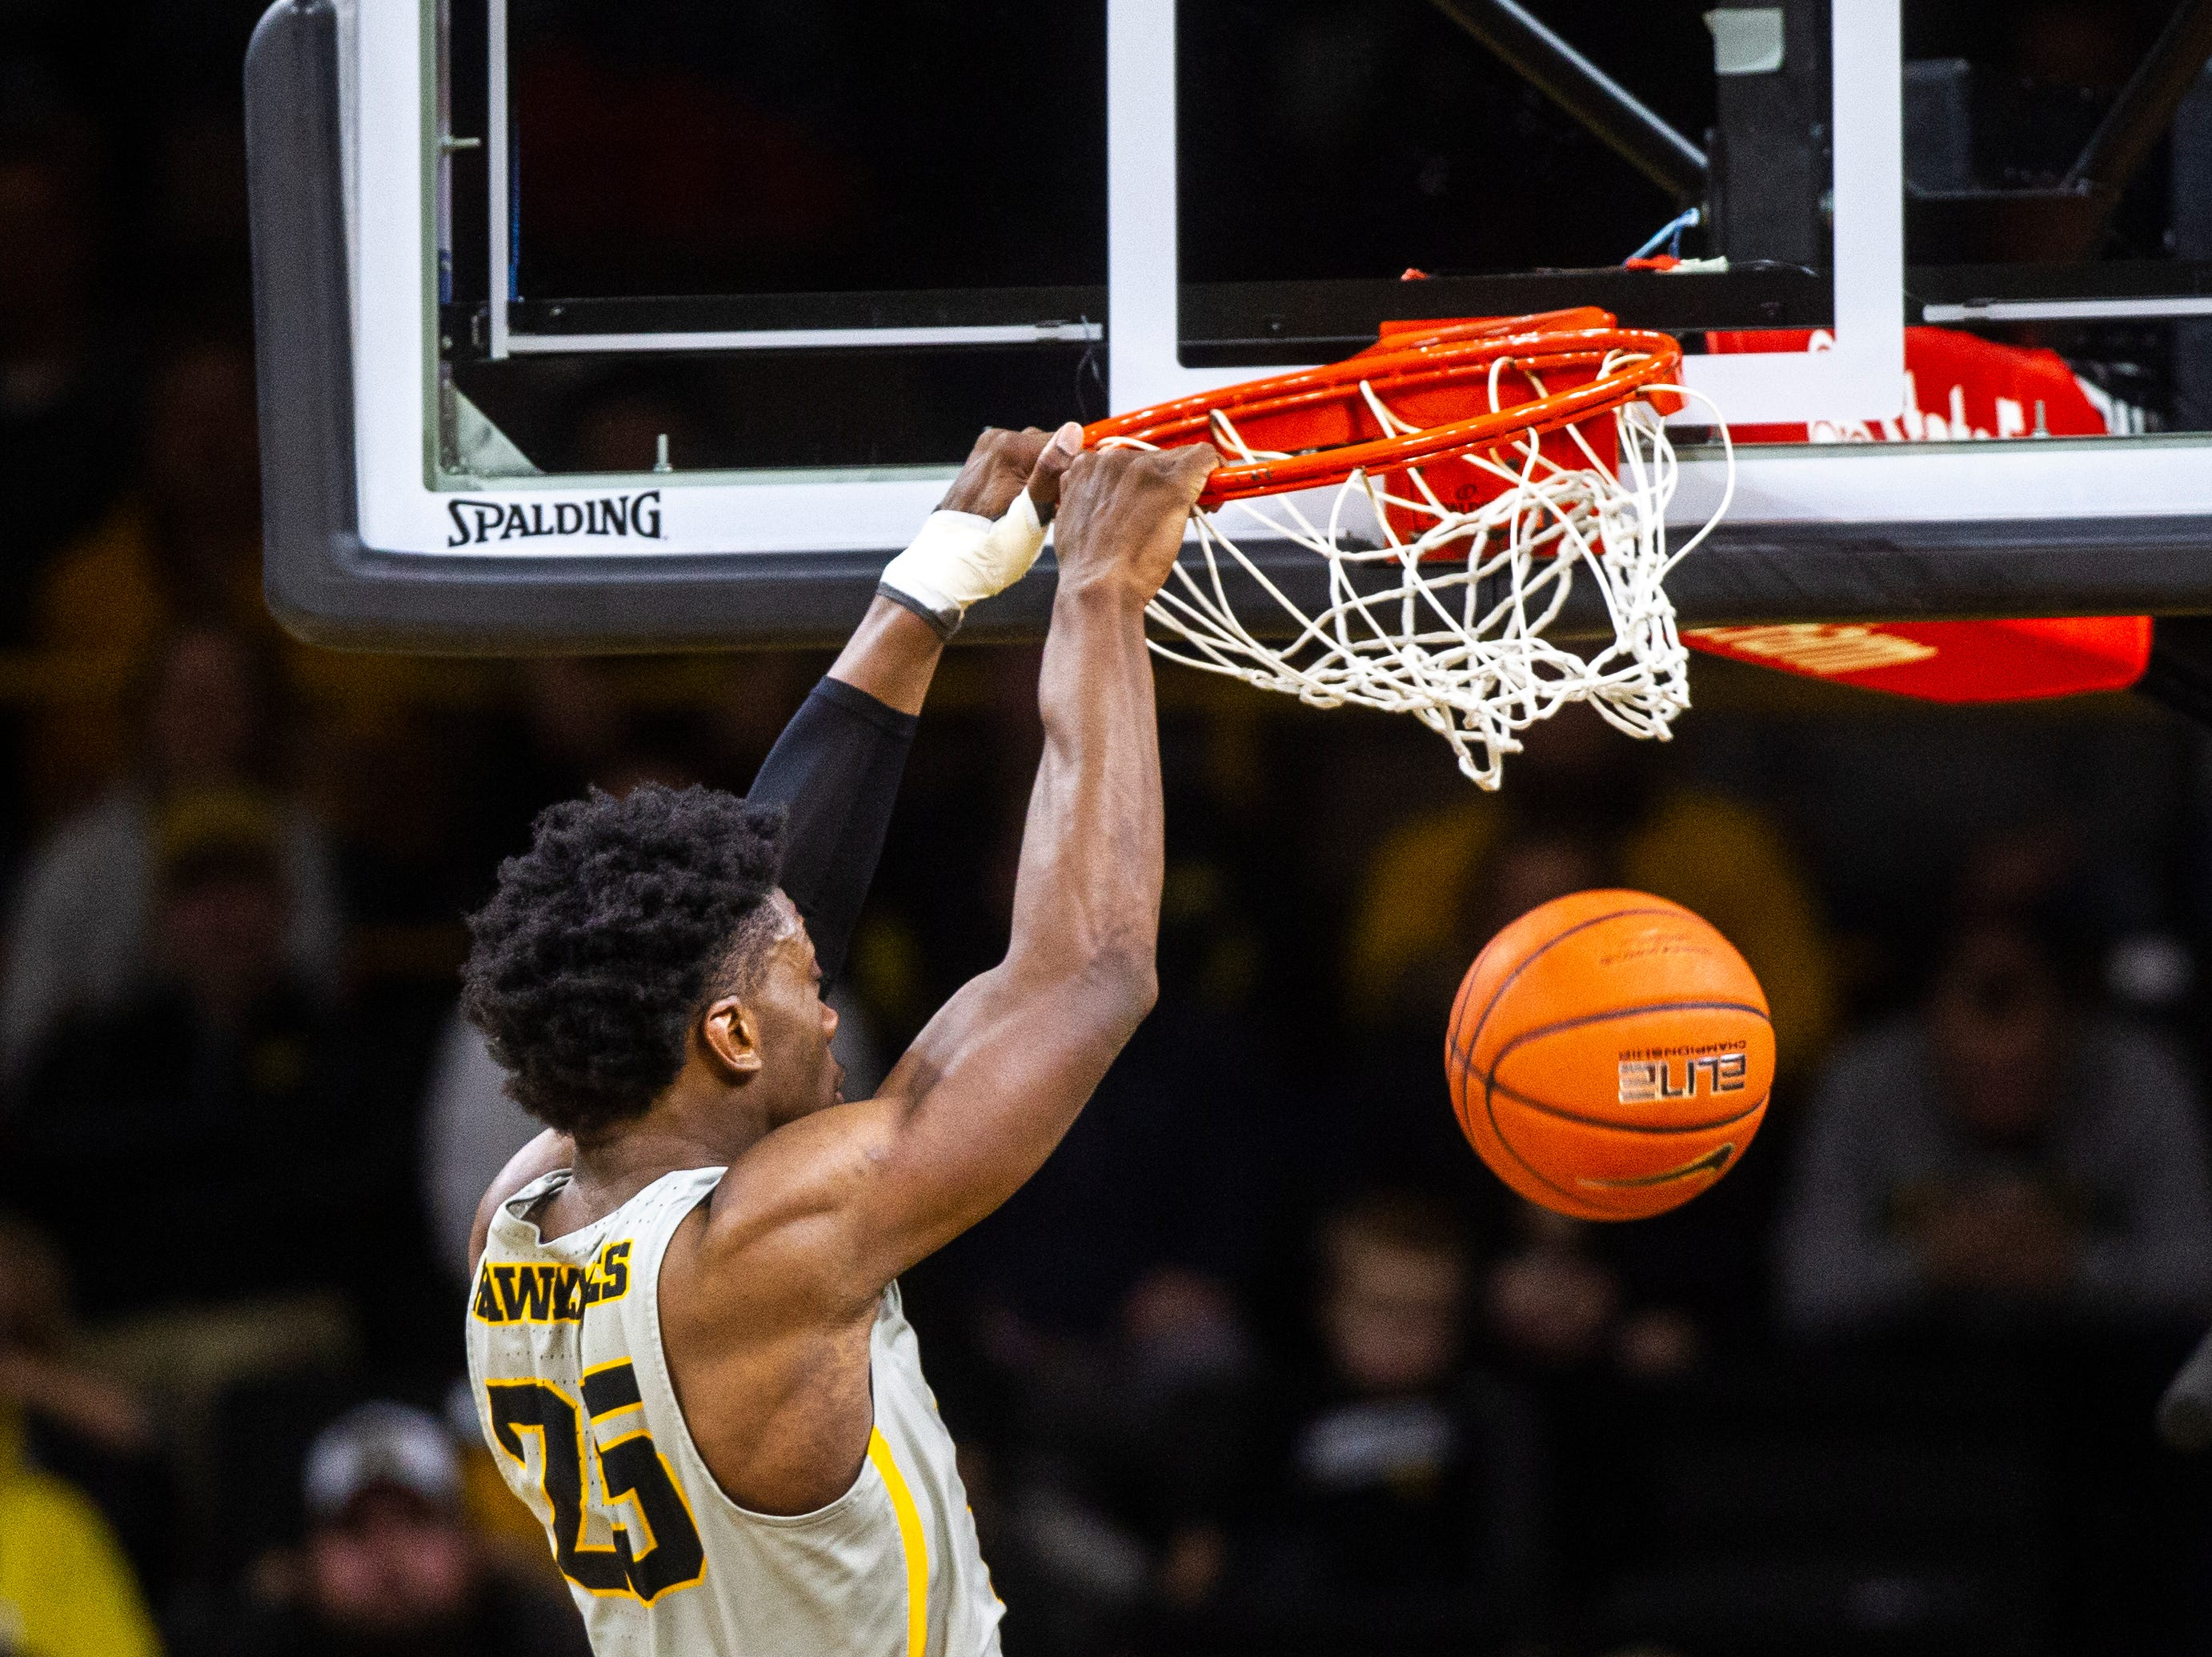 Iowa forward Tyler Cook (25) dunks during a NCAA Big Ten Conference men's basketball game on Thursday, Jan. 24, 2019, at Carver-Hawkeye Arena in Iowa City, Iowa.